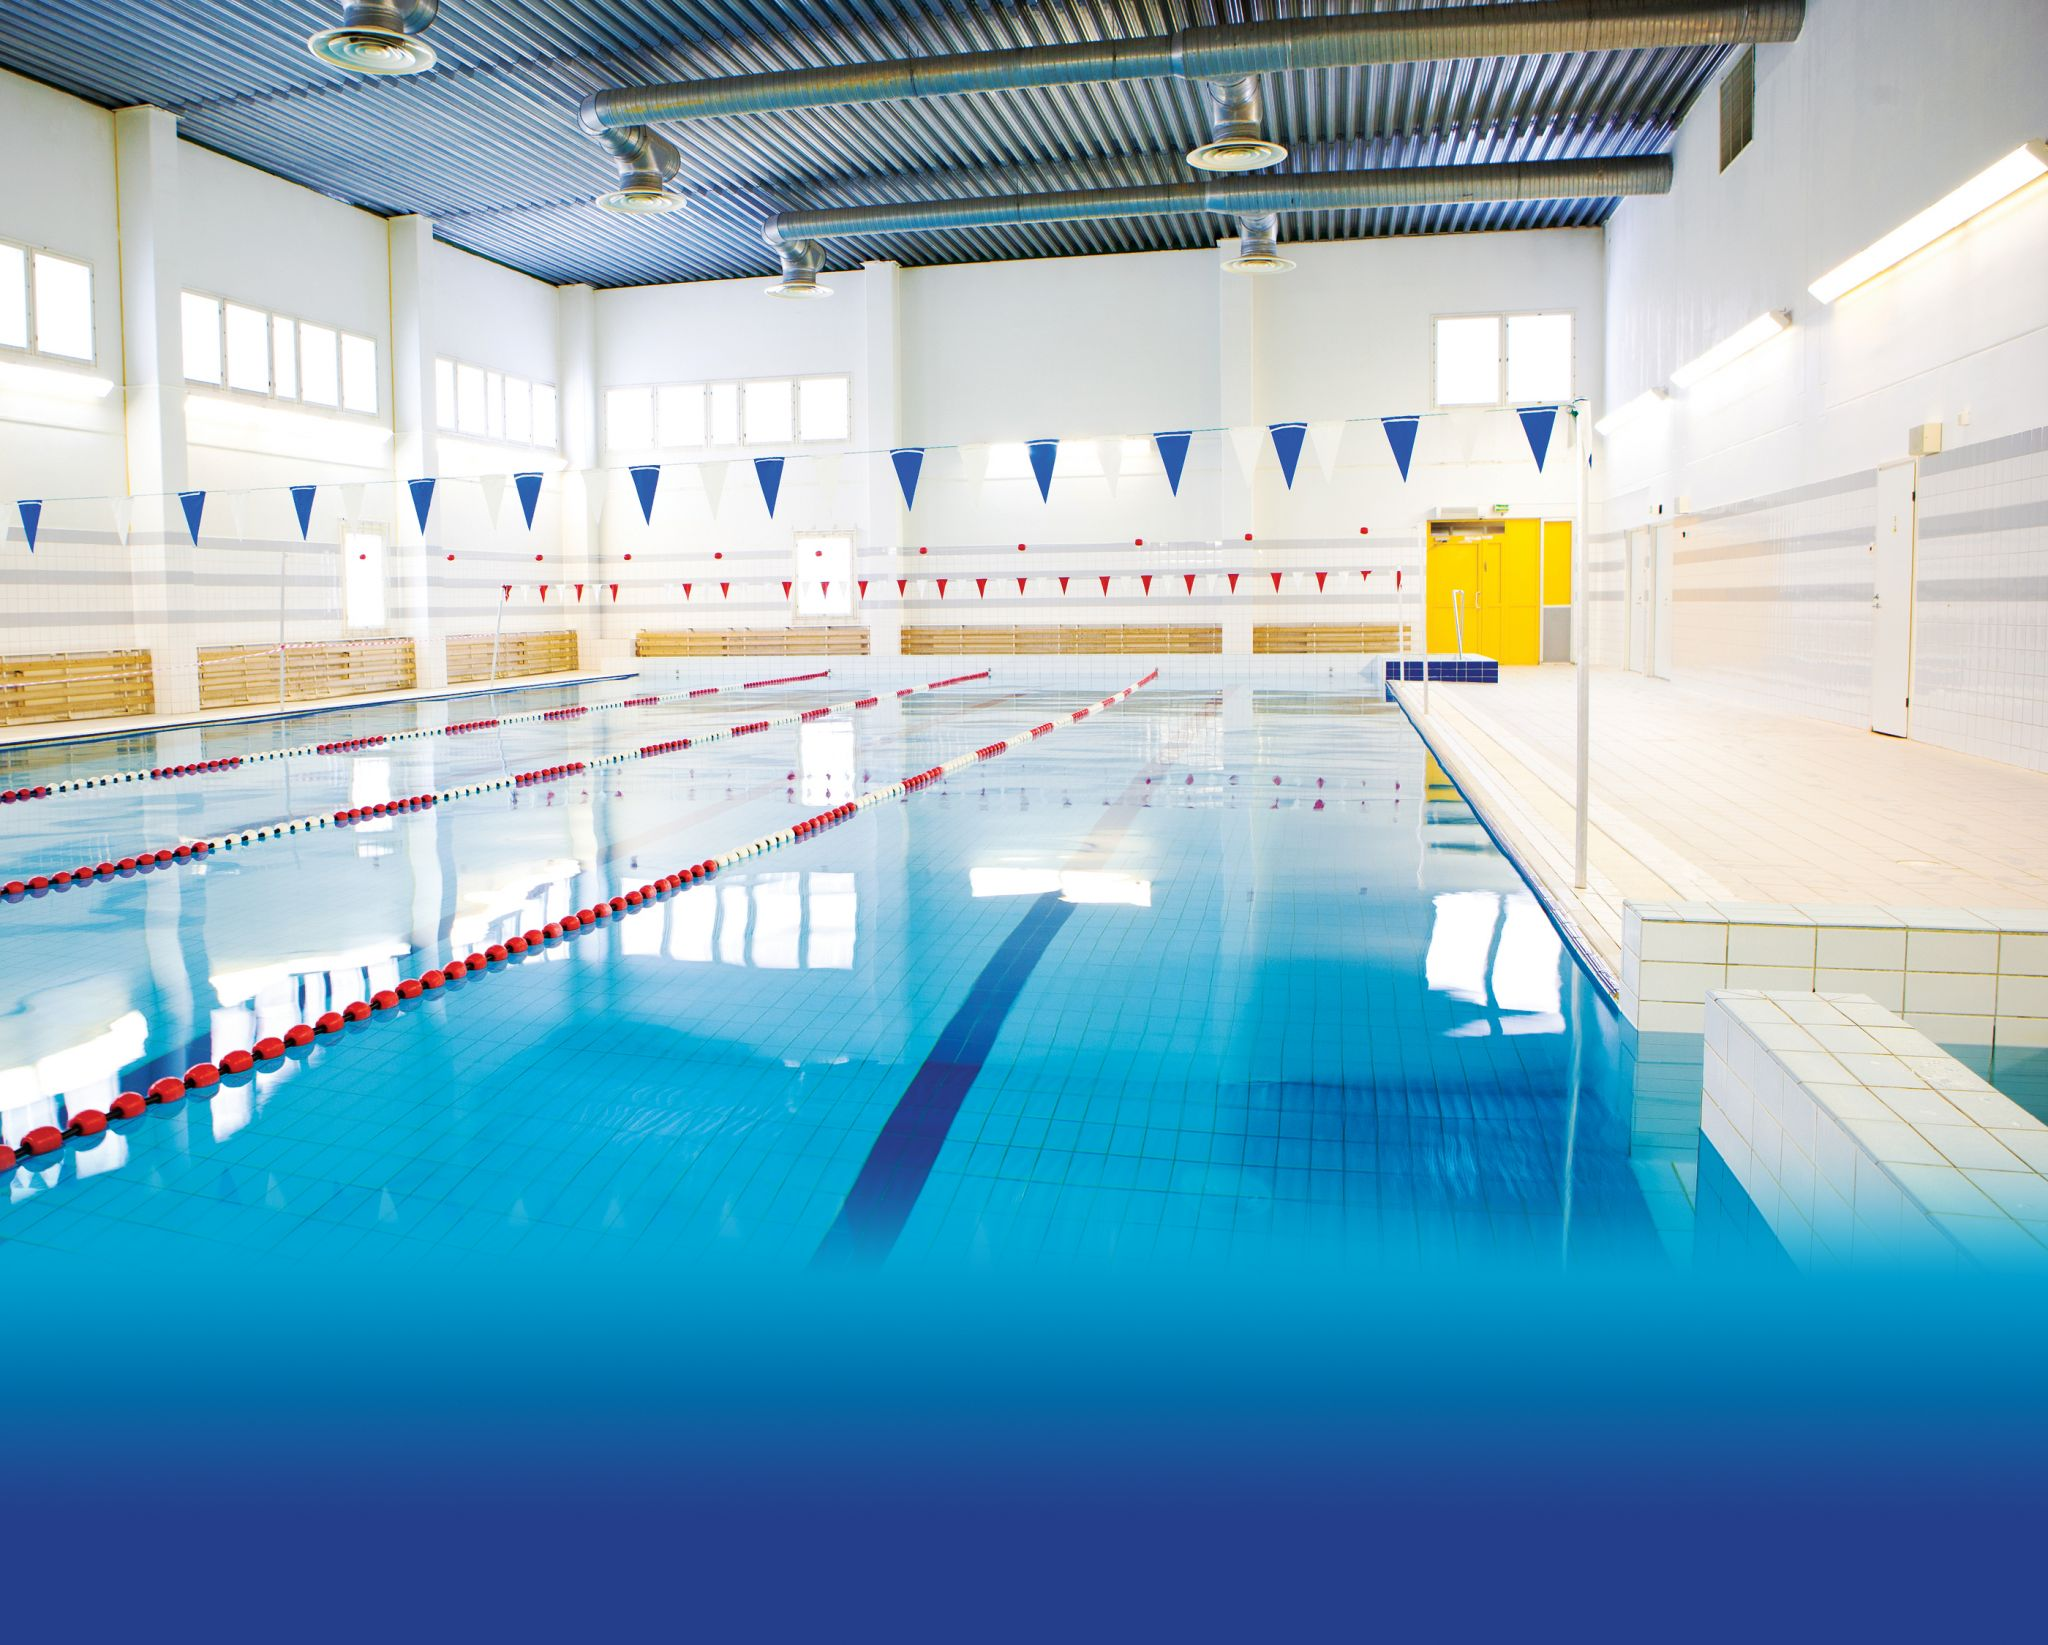 Avoiding problems in aquatics facilities atypical design for Pool ventilation design